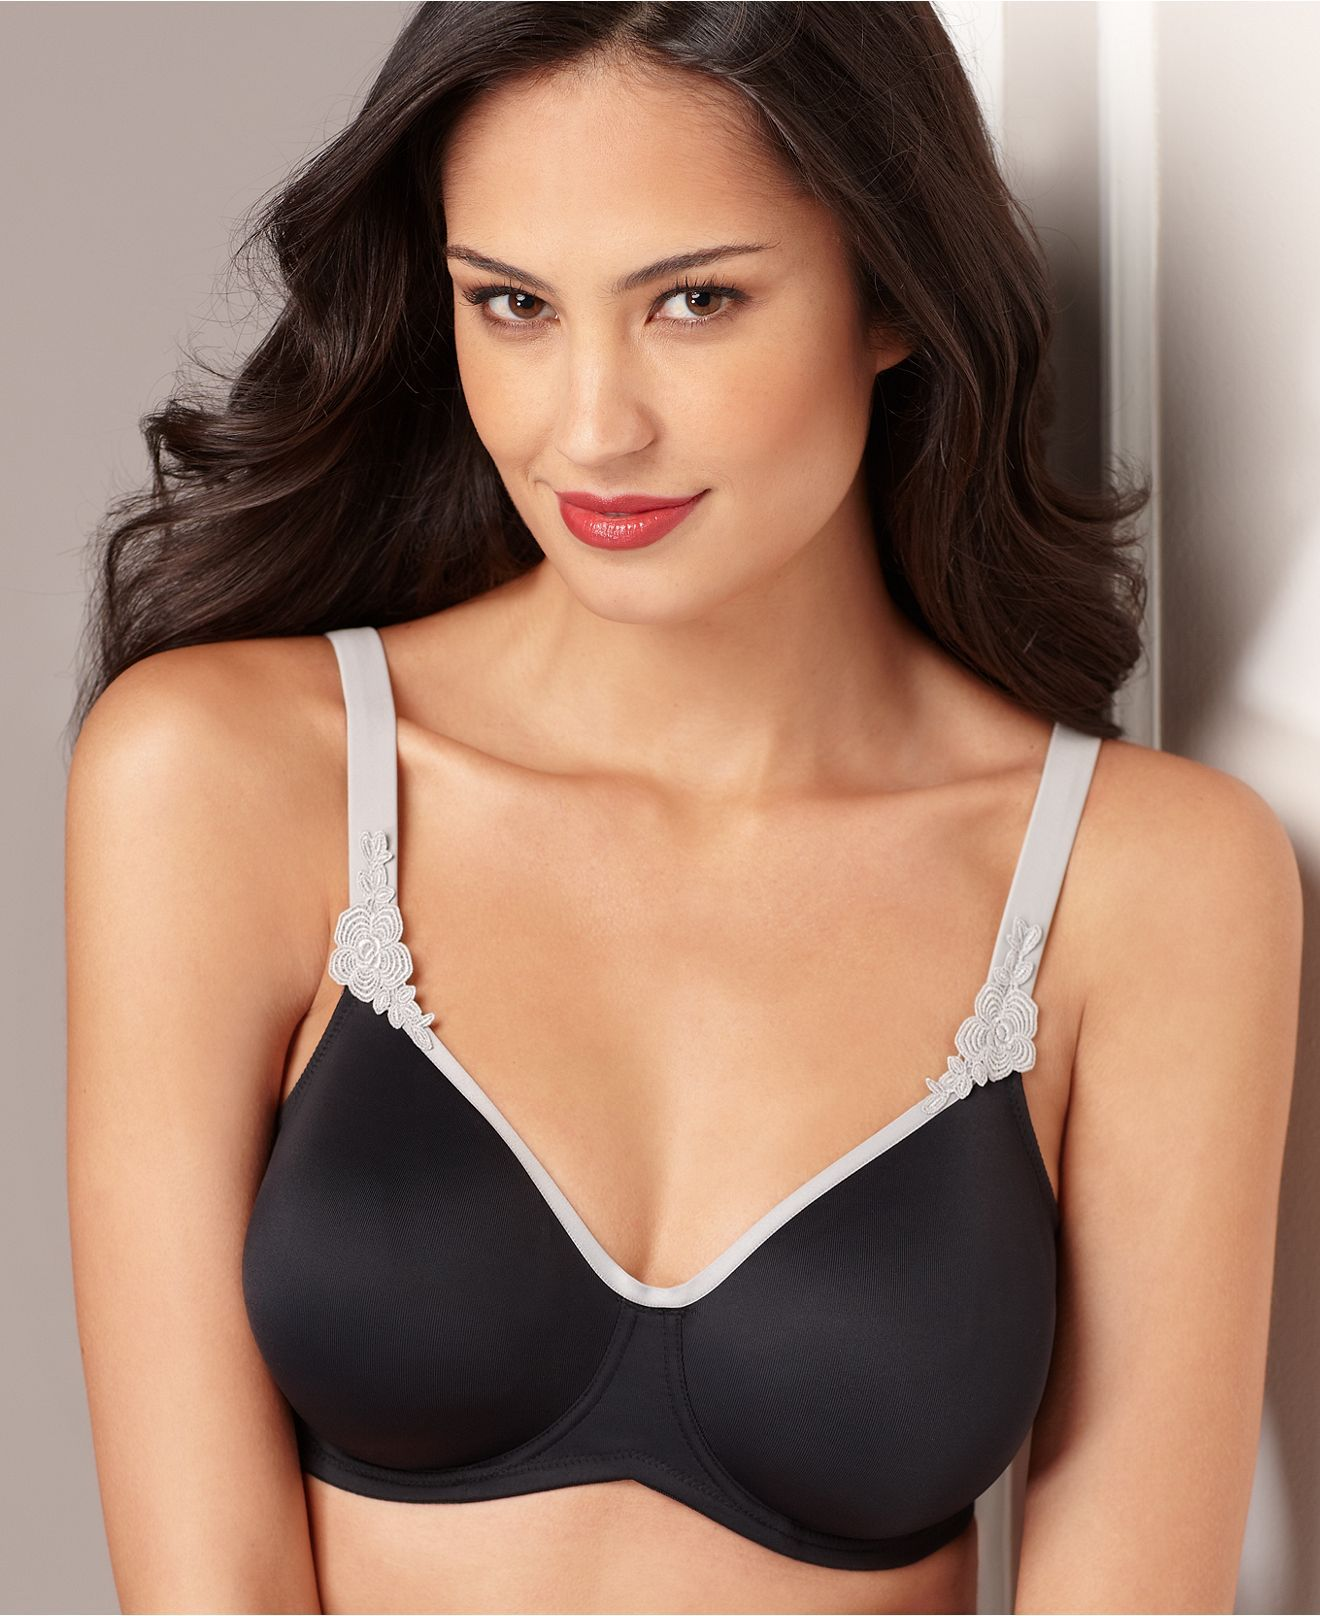 Anita Bra, Full Figure Underwire 5690 - Womens Plus Size Bras ...